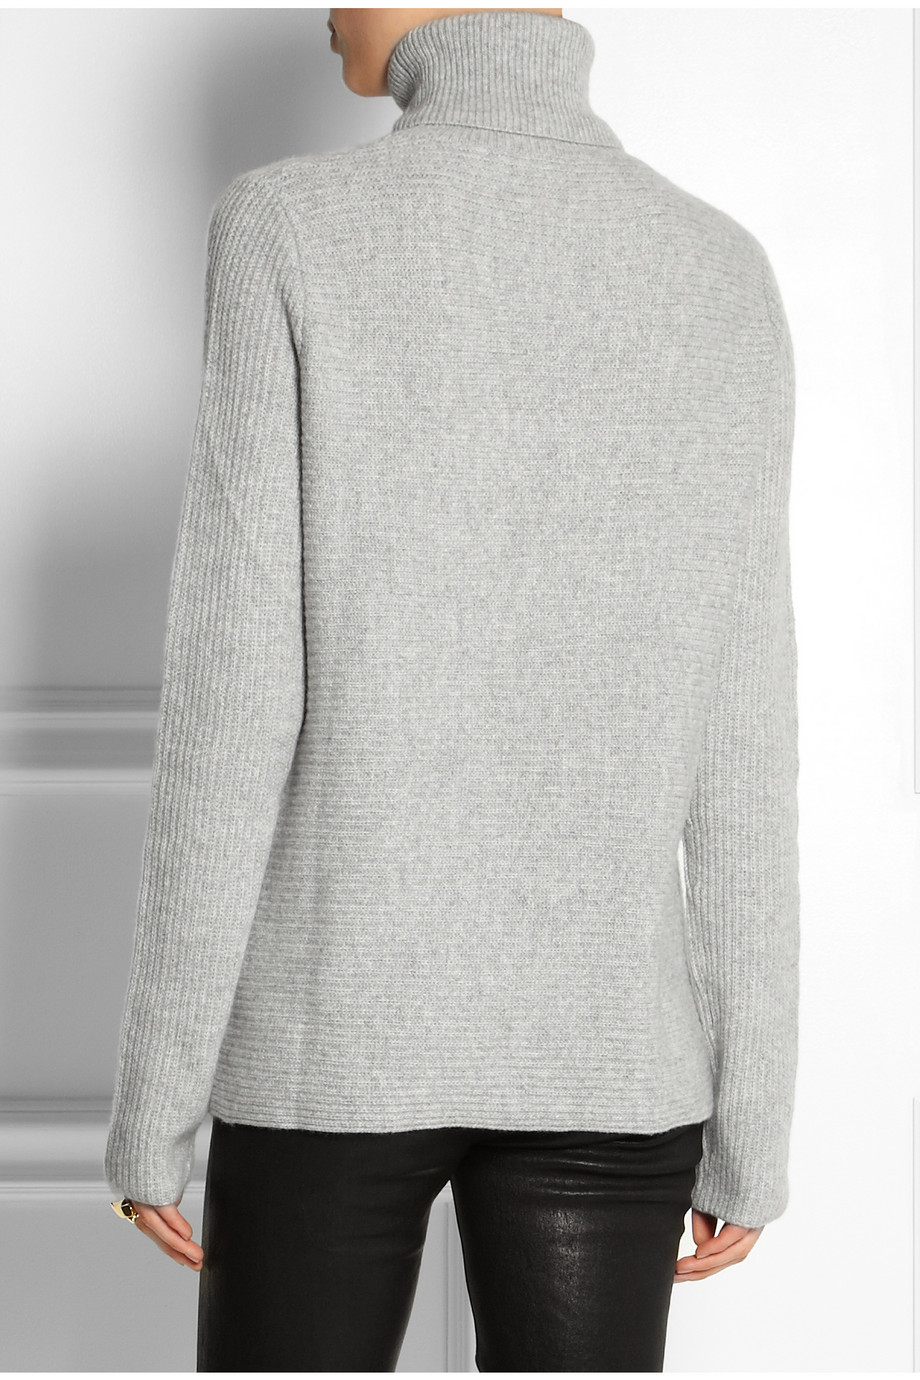 Banjo & matilda Ribbed Cashmere Turtleneck Sweater in Gray | Lyst